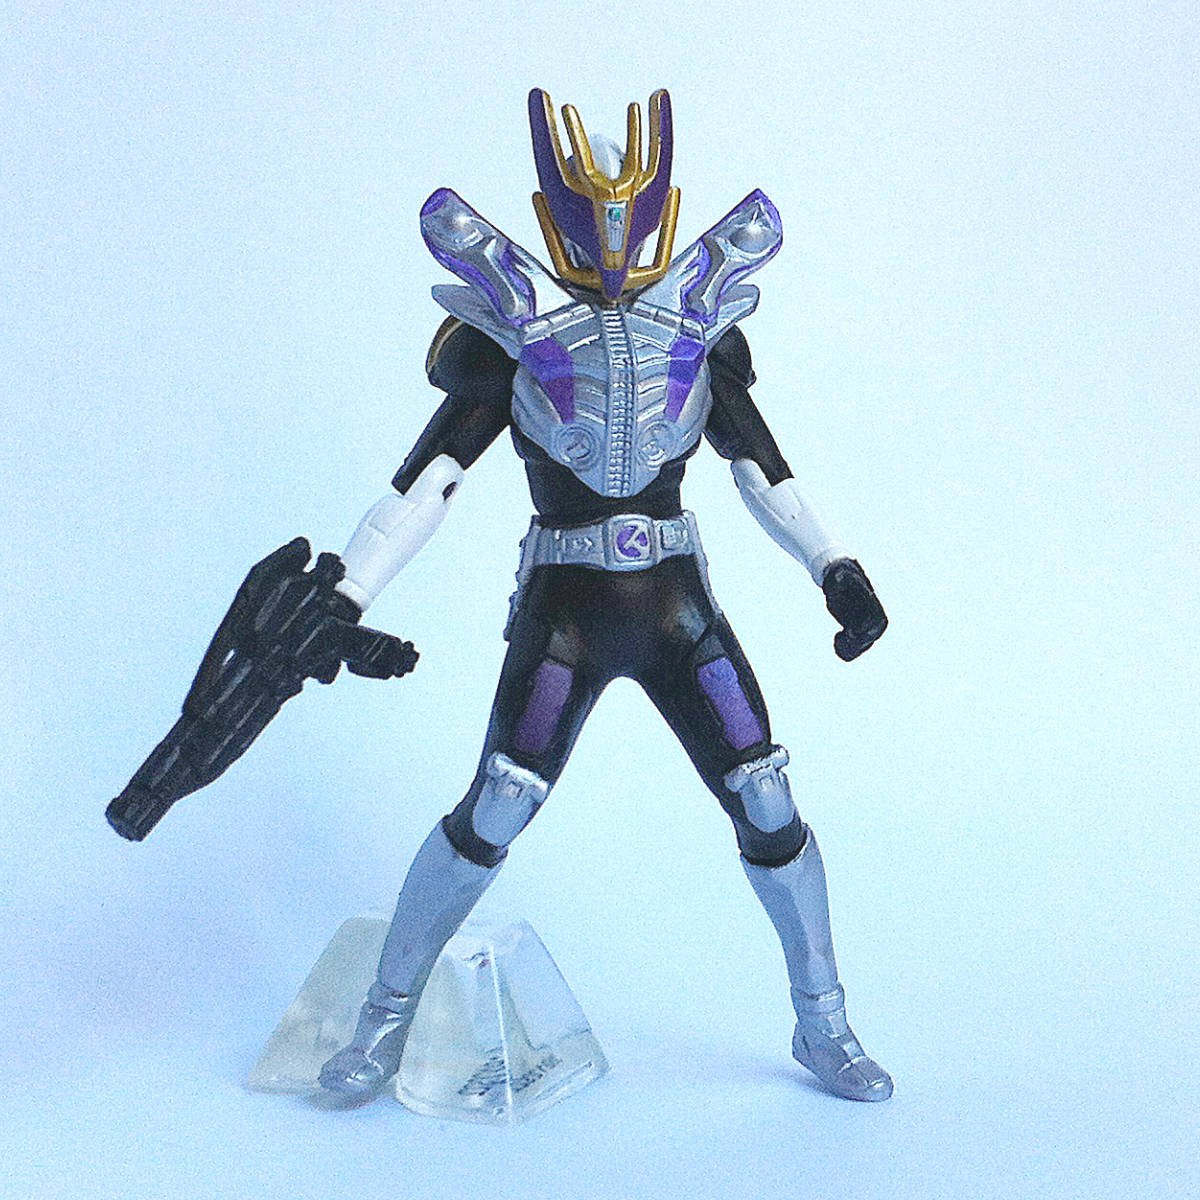 Kamen Rider Den-O Gun Form from Kamen Rider Action Pose by Bandai